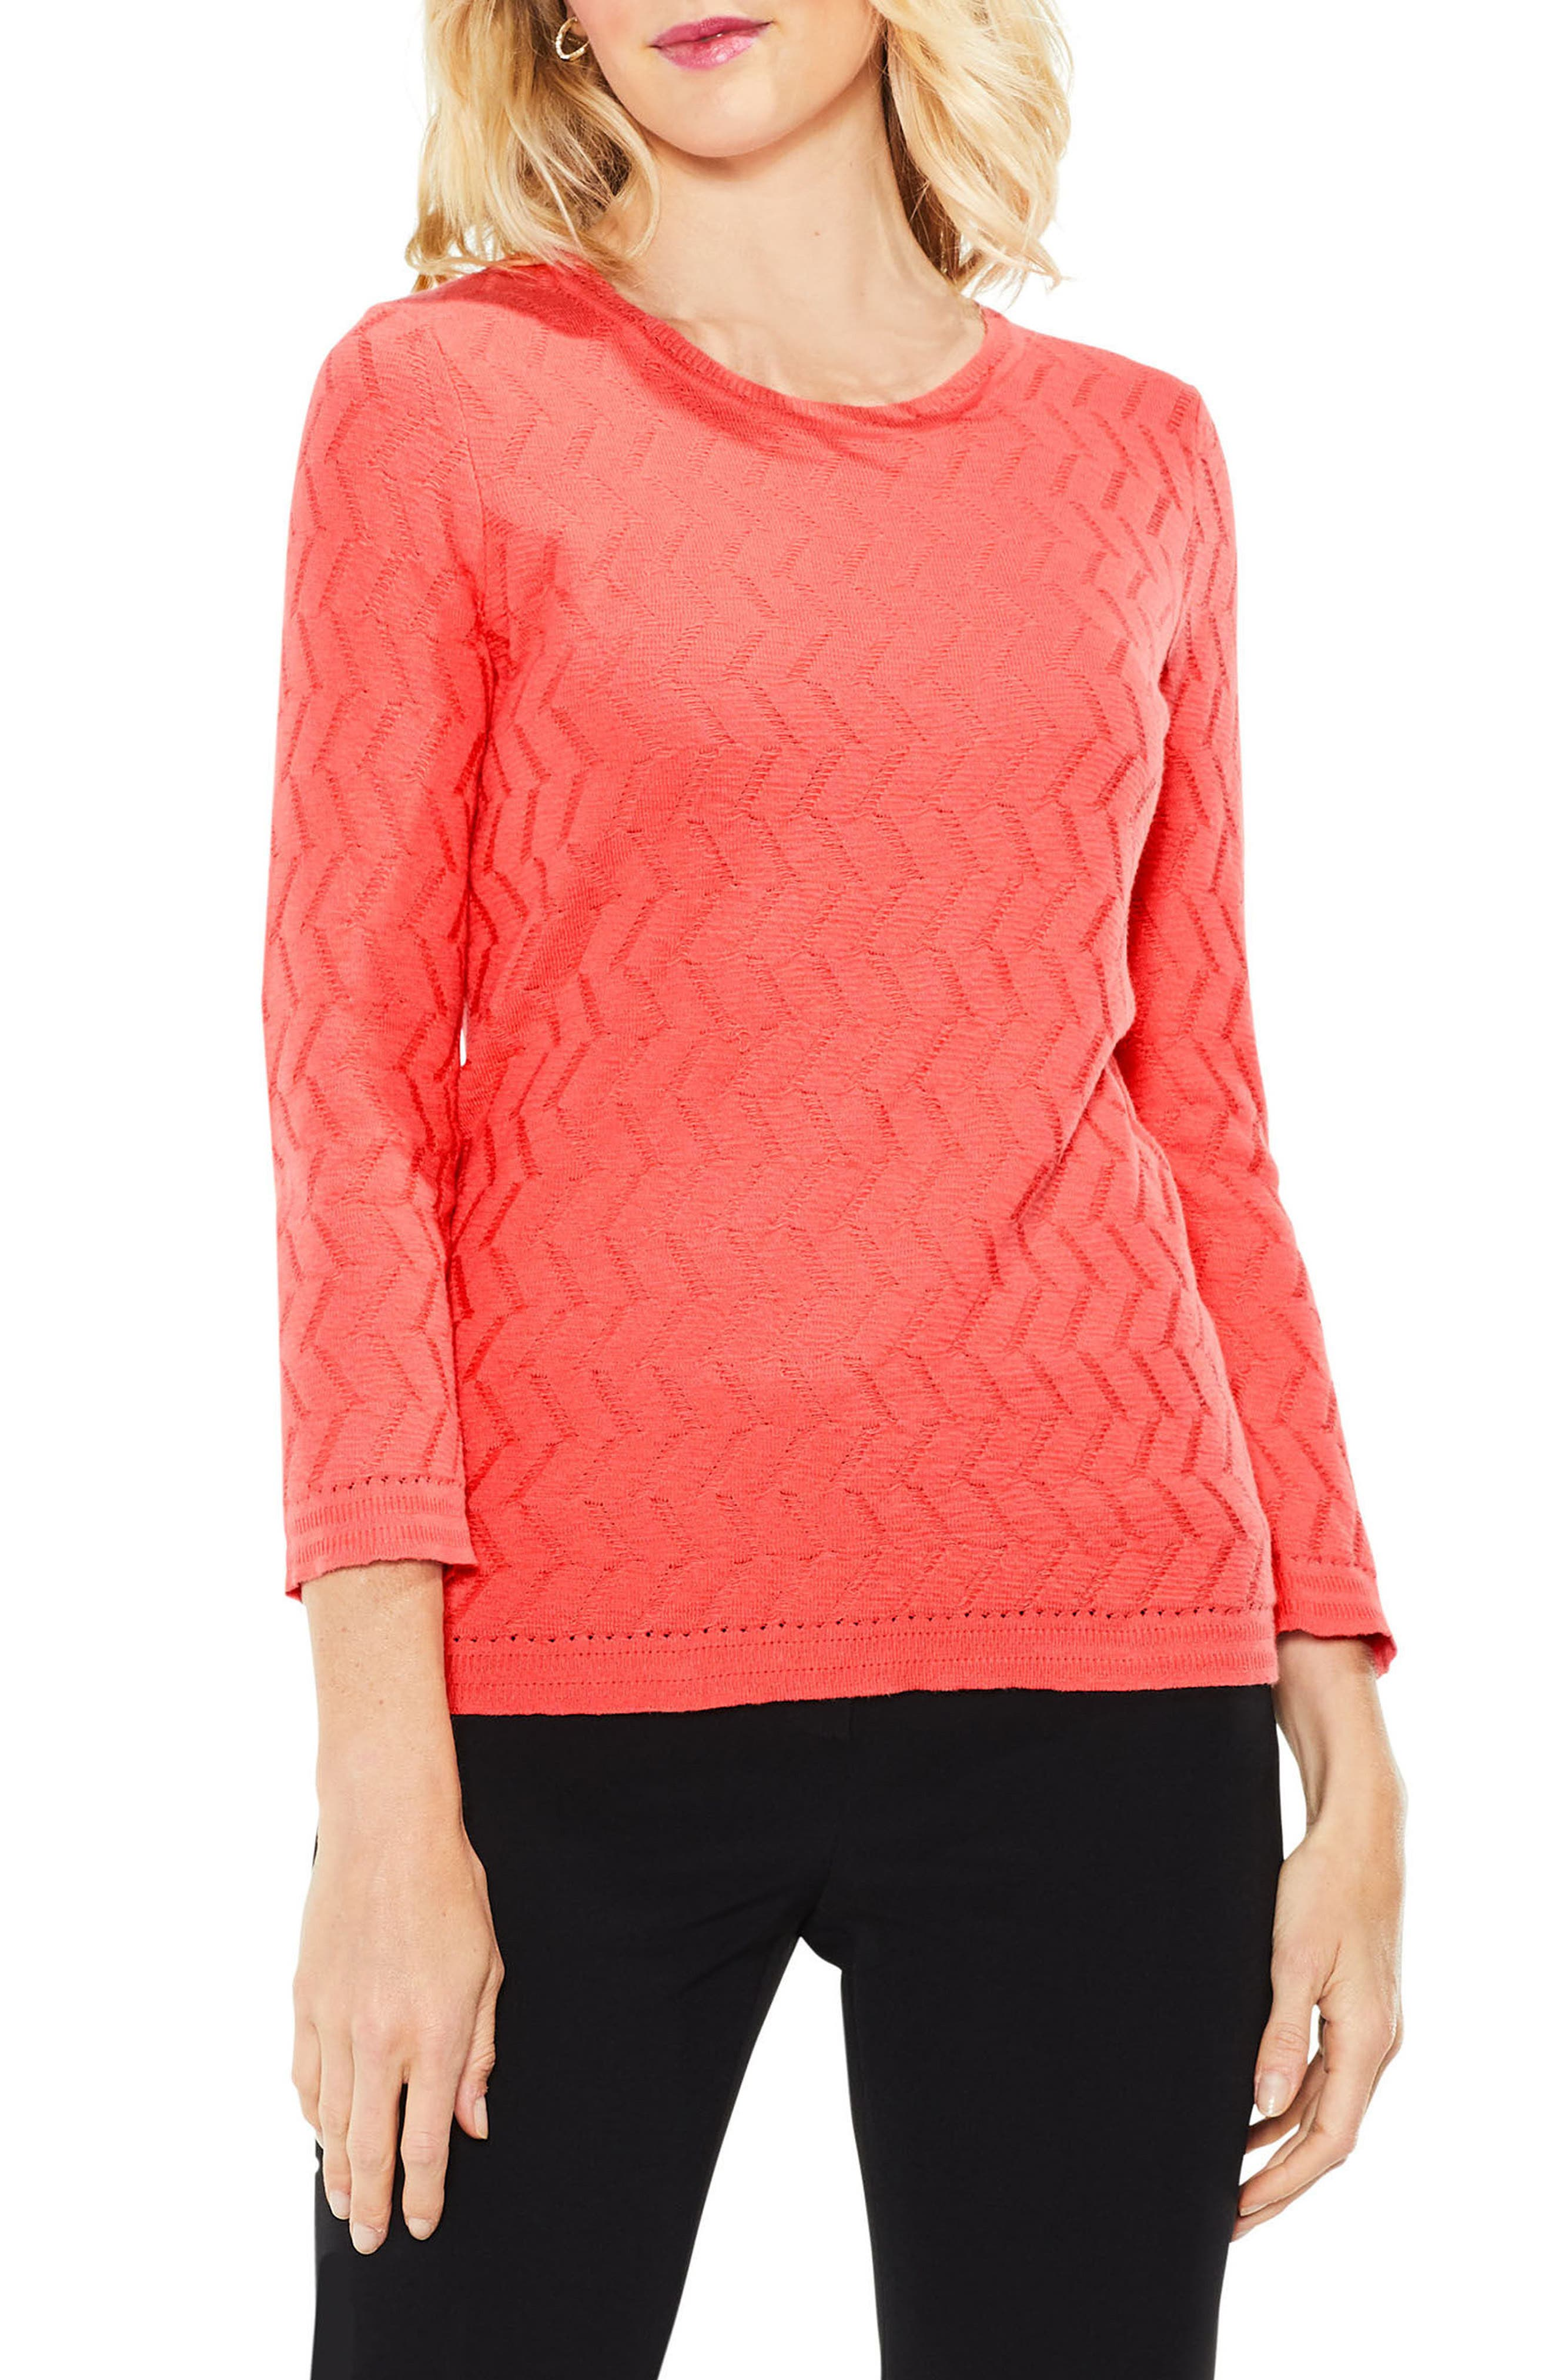 Vince Camuto Textured Stitch Sweater (Regular & Petite)